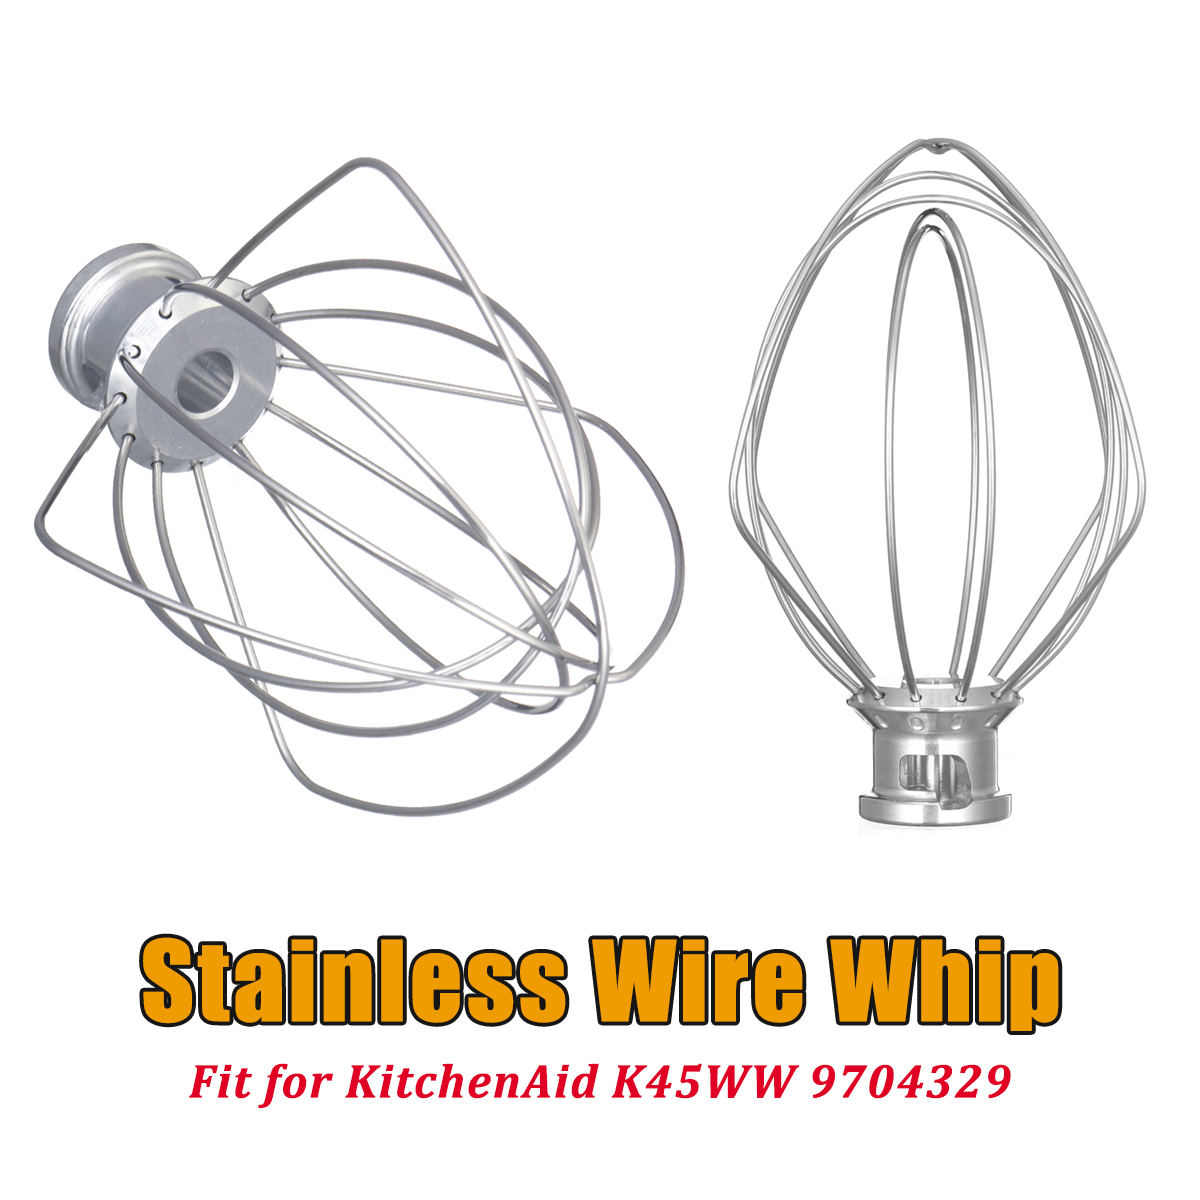 304 Stainless Steel Wire Whip Mixer Attachment For  K45WW 9704329 For Mixers Milkshakes Noodle Makers